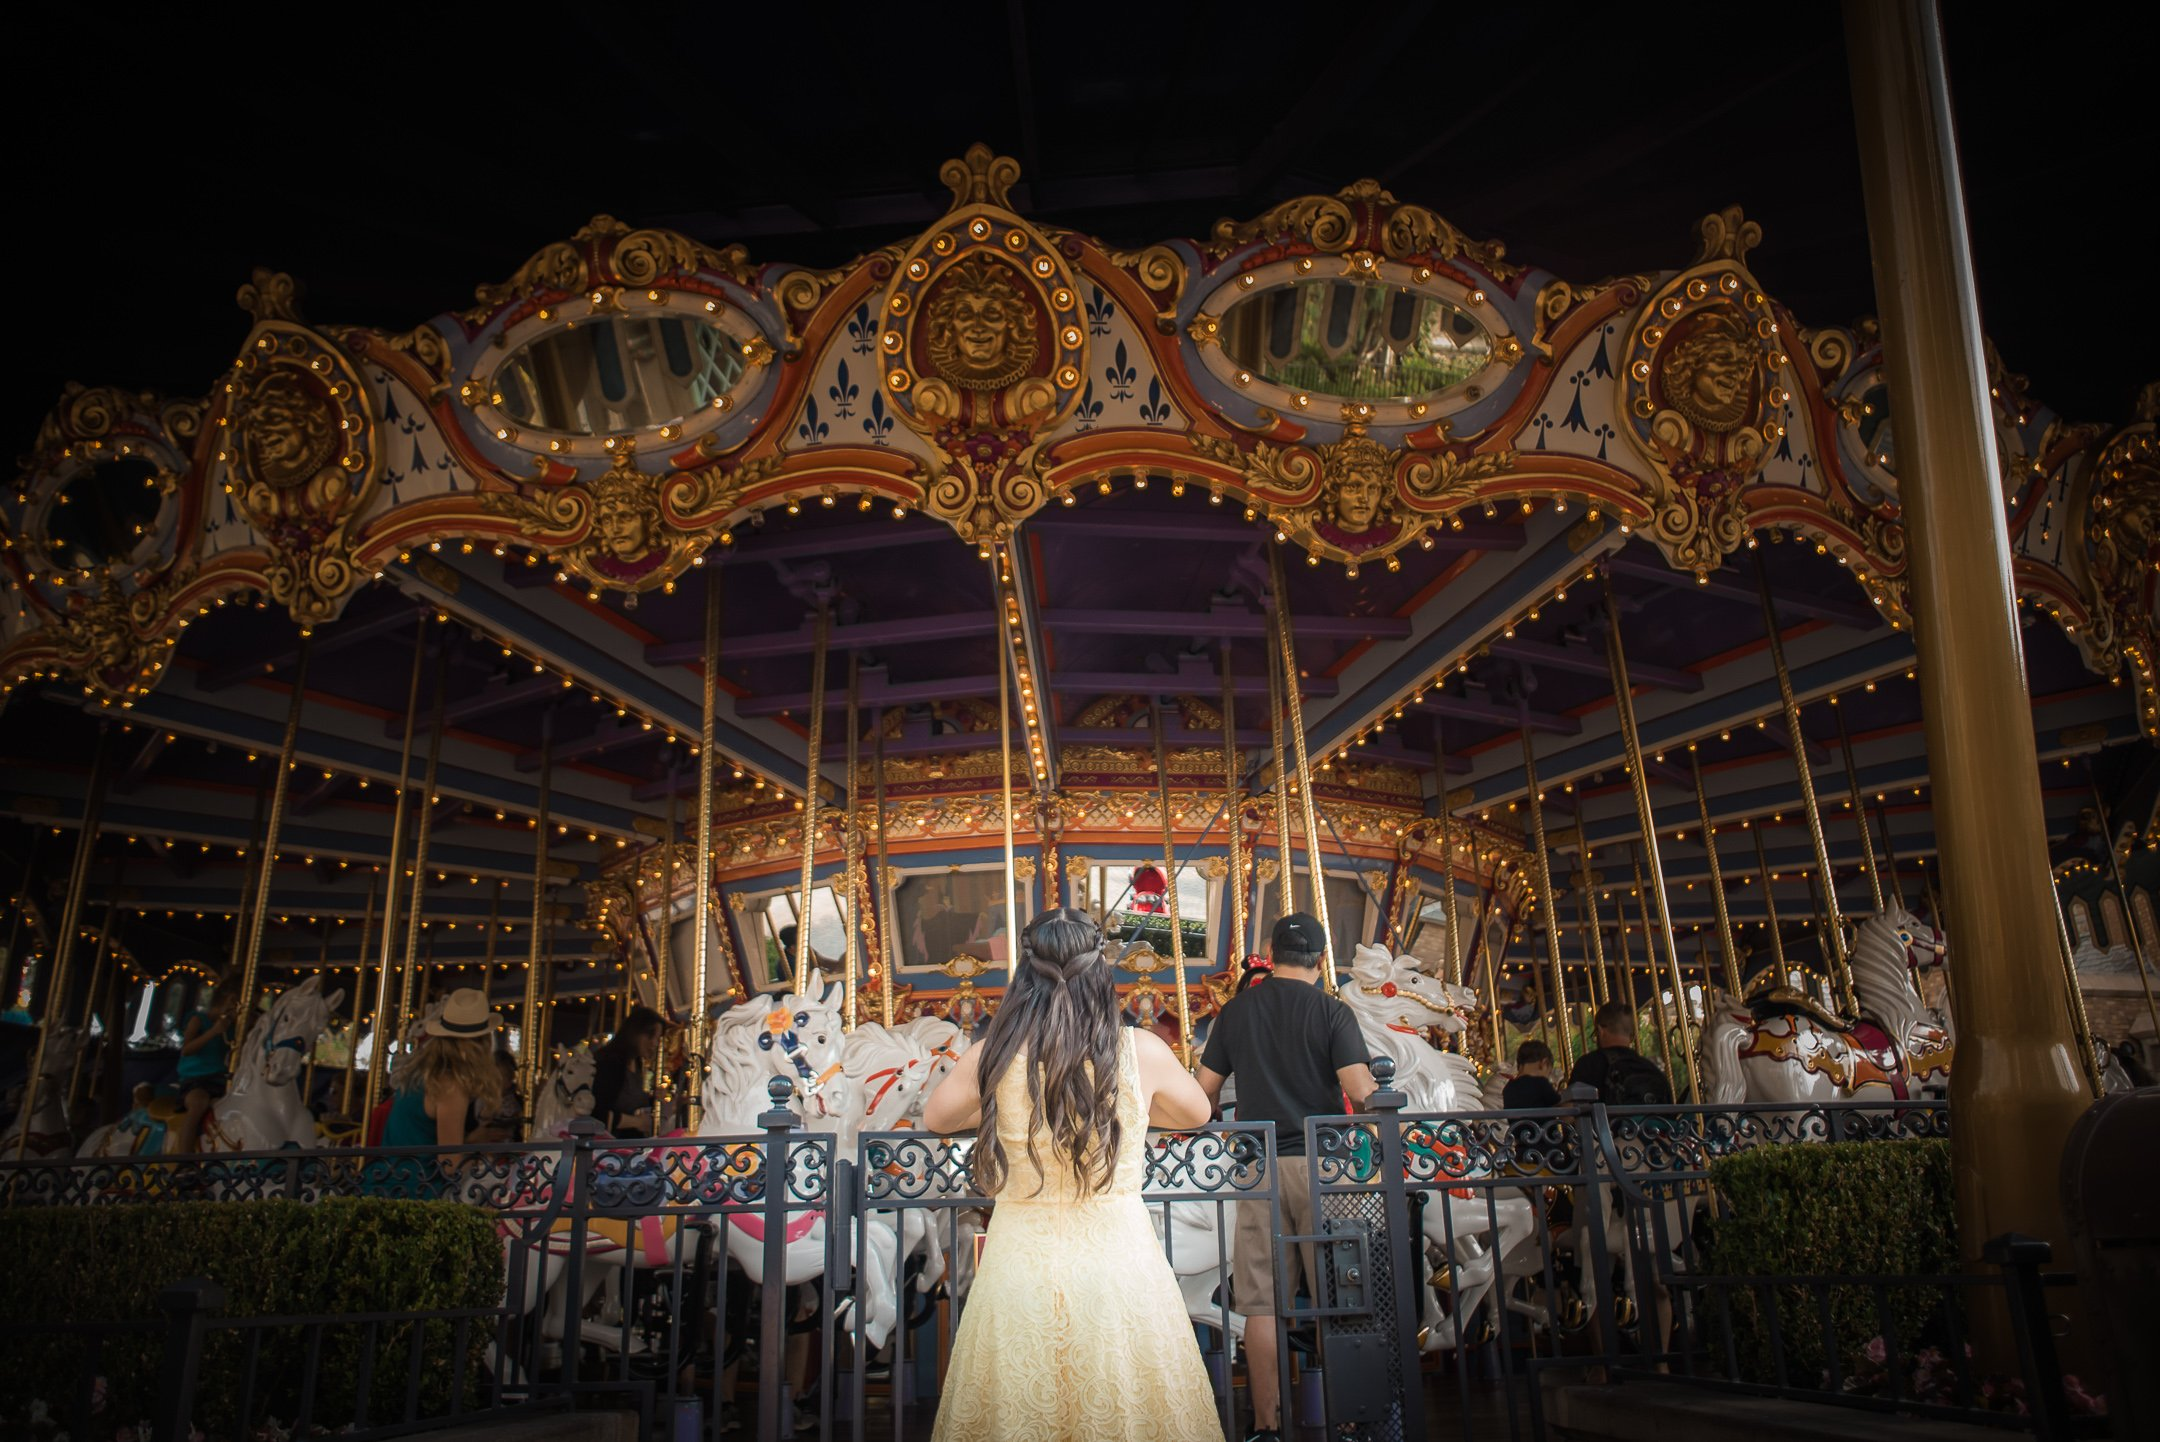 Disneyland Quinceanera photo session - In front of King Arthur's Carousel